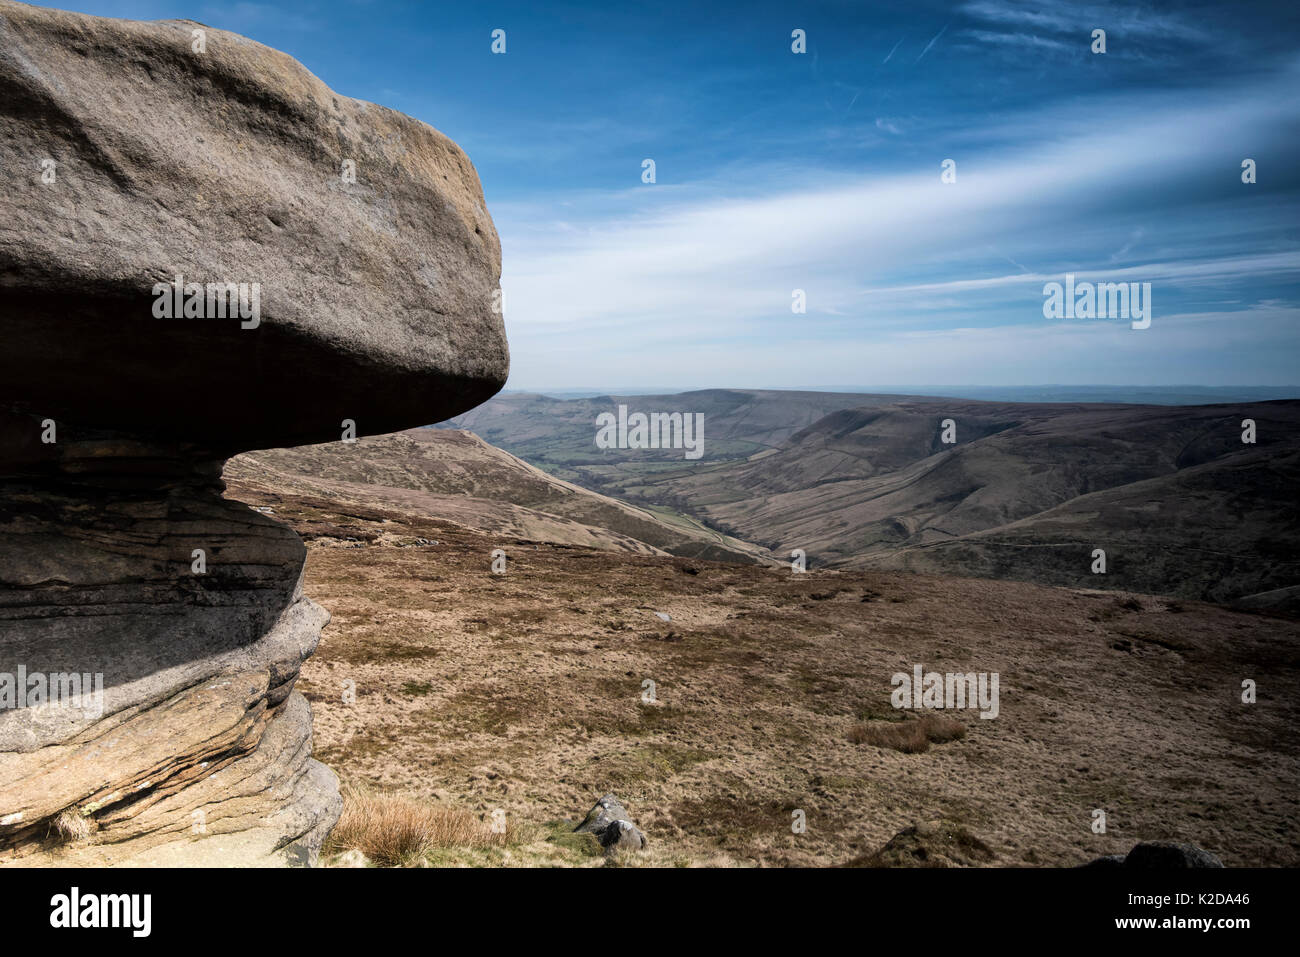 Rock formations in carboniferous / millstone grit, Kinder Scout, Edale, Derbyshire UK November - Stock Image